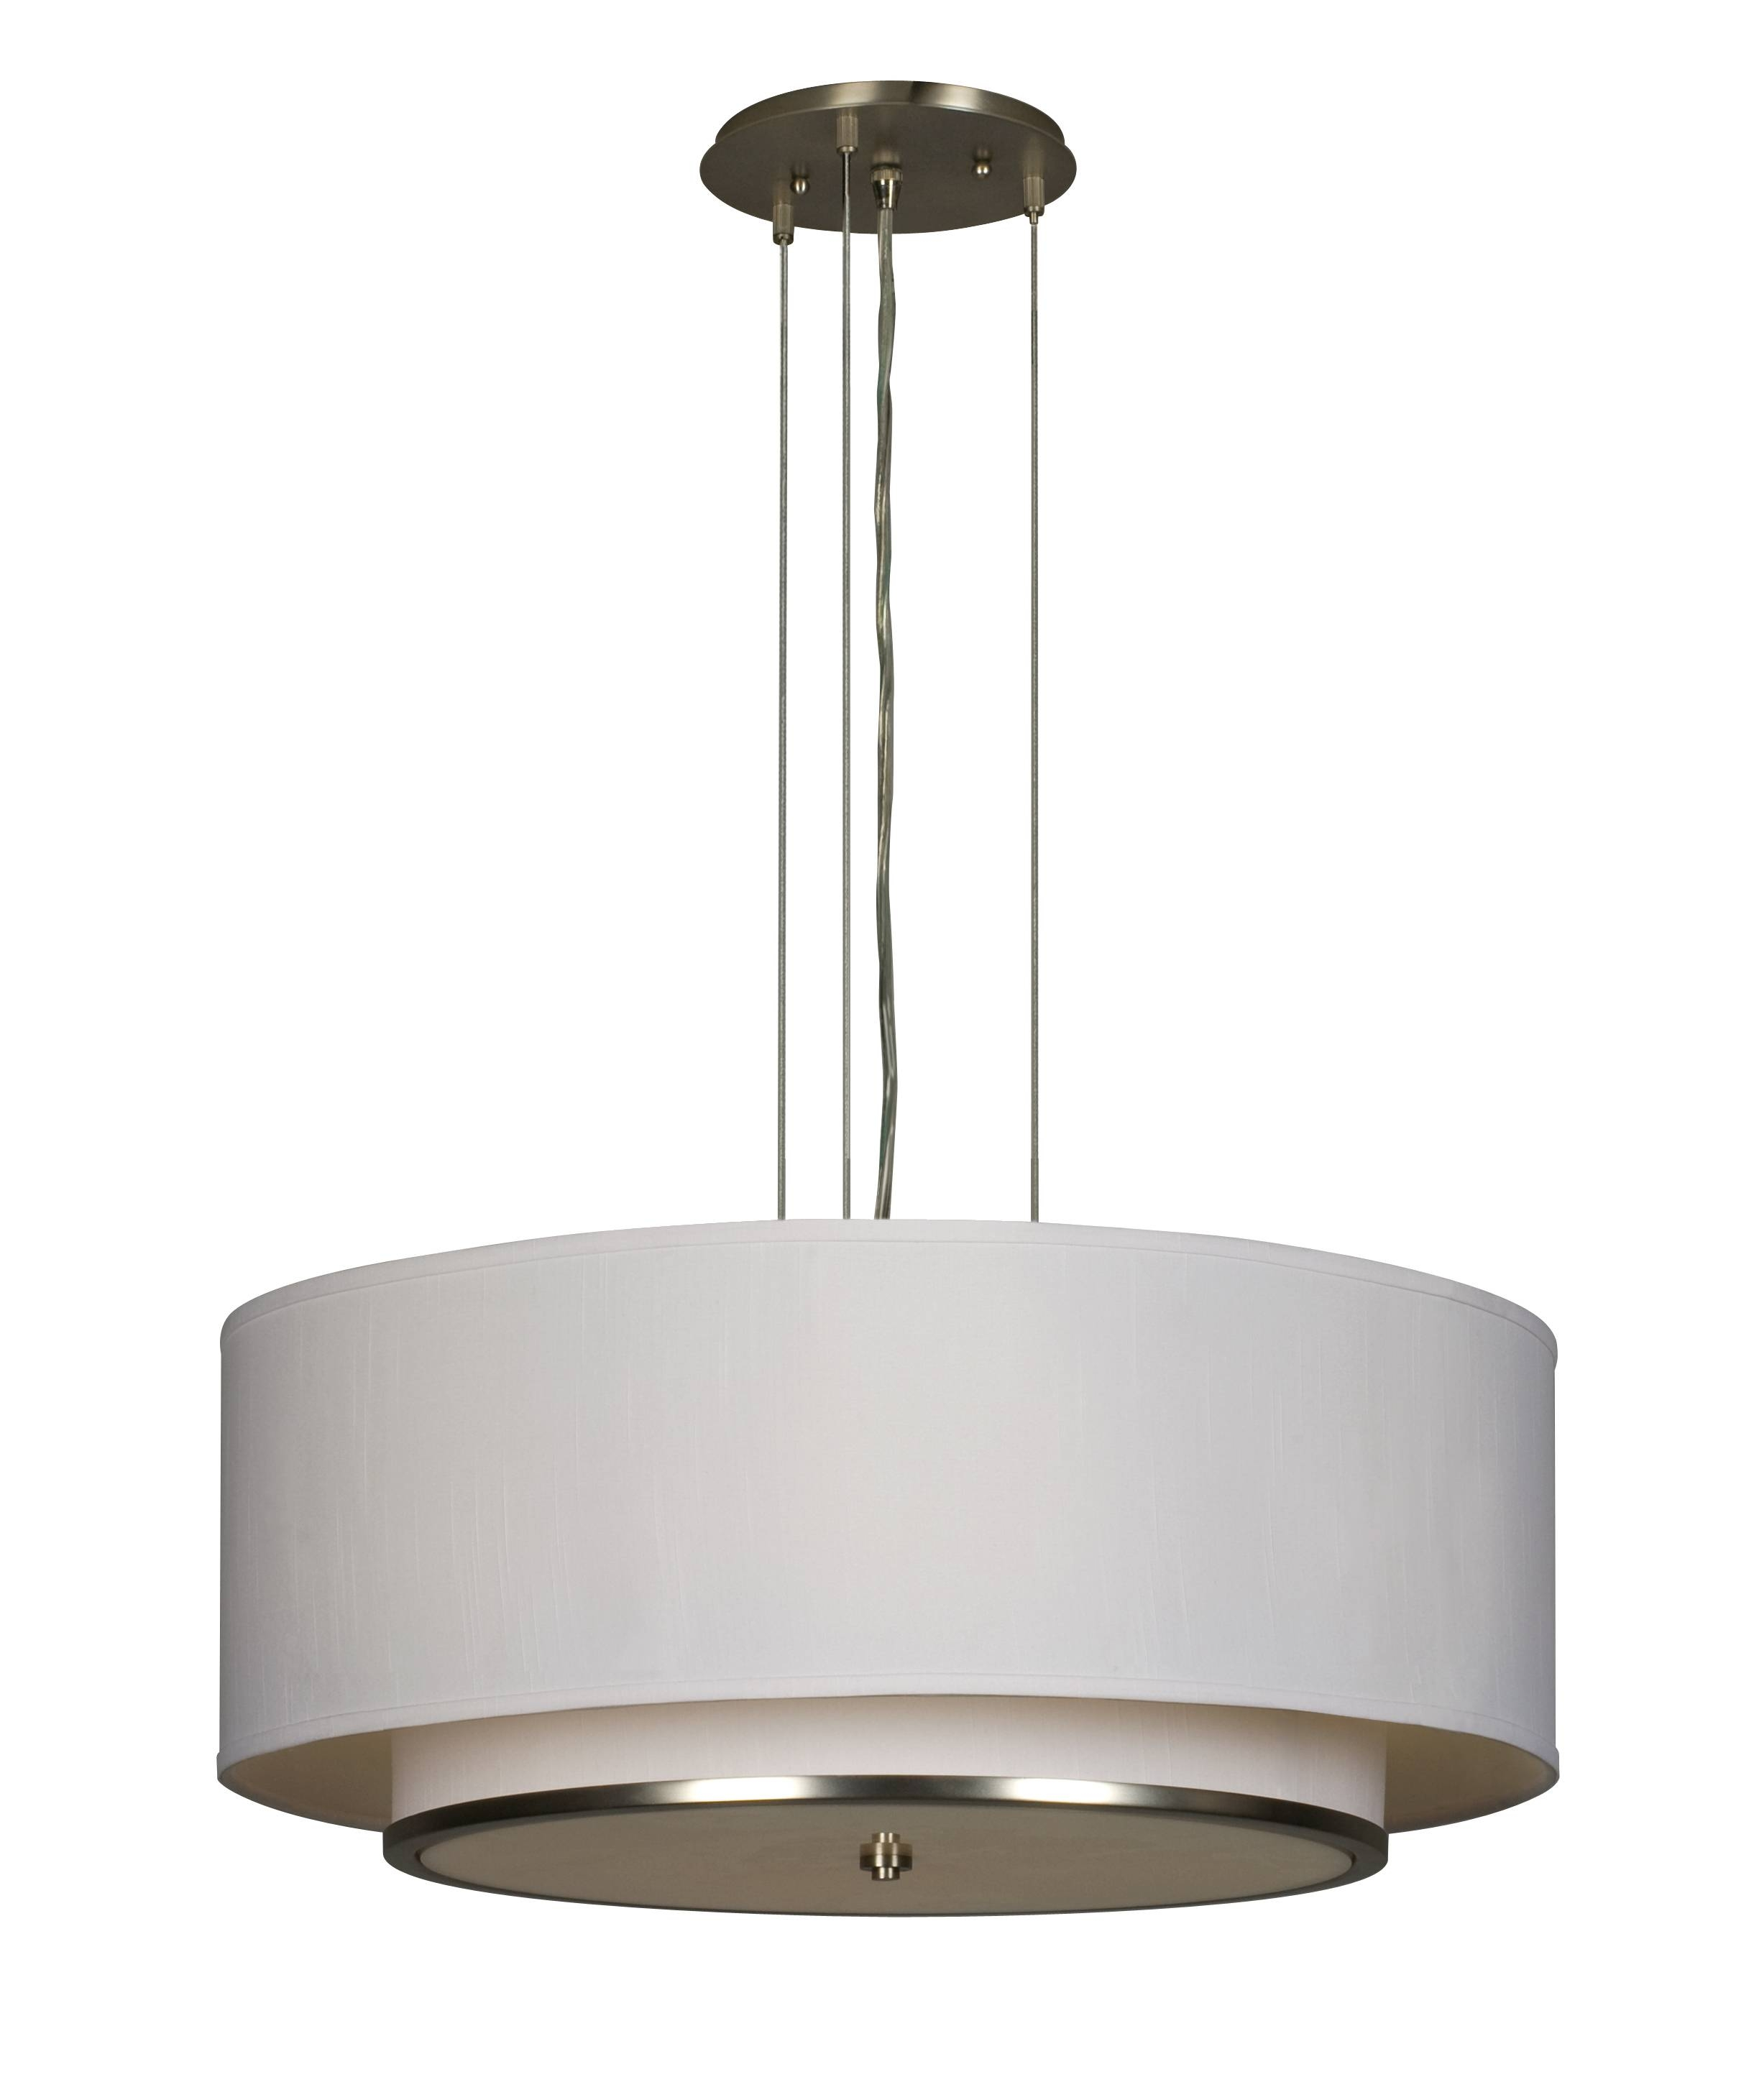 Fixtures Light : Fair Pendant Commercial Fluorescent Light intended for Commercial Pendant Light Fixtures (Image 7 of 15)